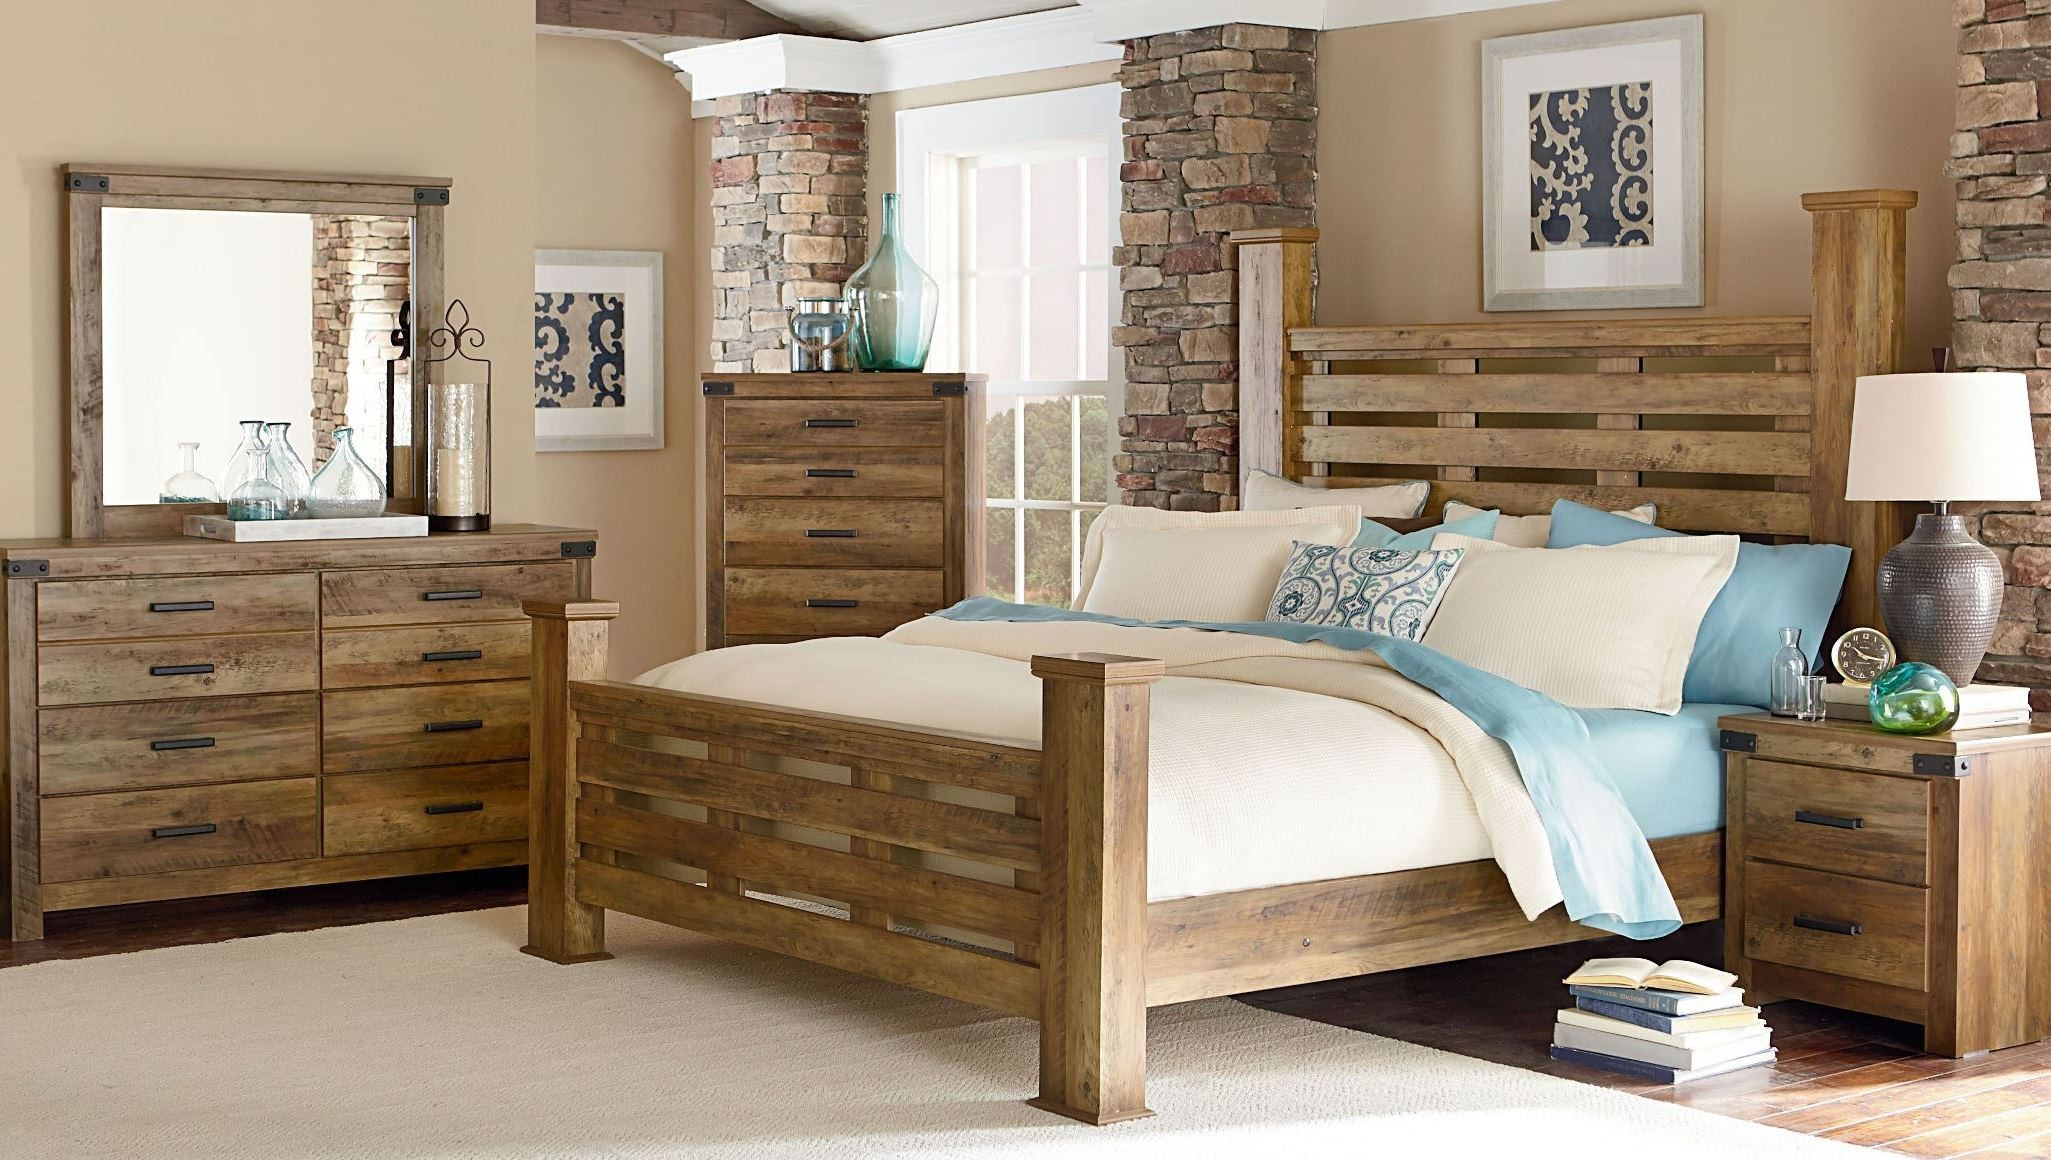 Montana Rustic Buckskin Poster Bedroom Set 524 51 80 61 2052451 Standard Furniture